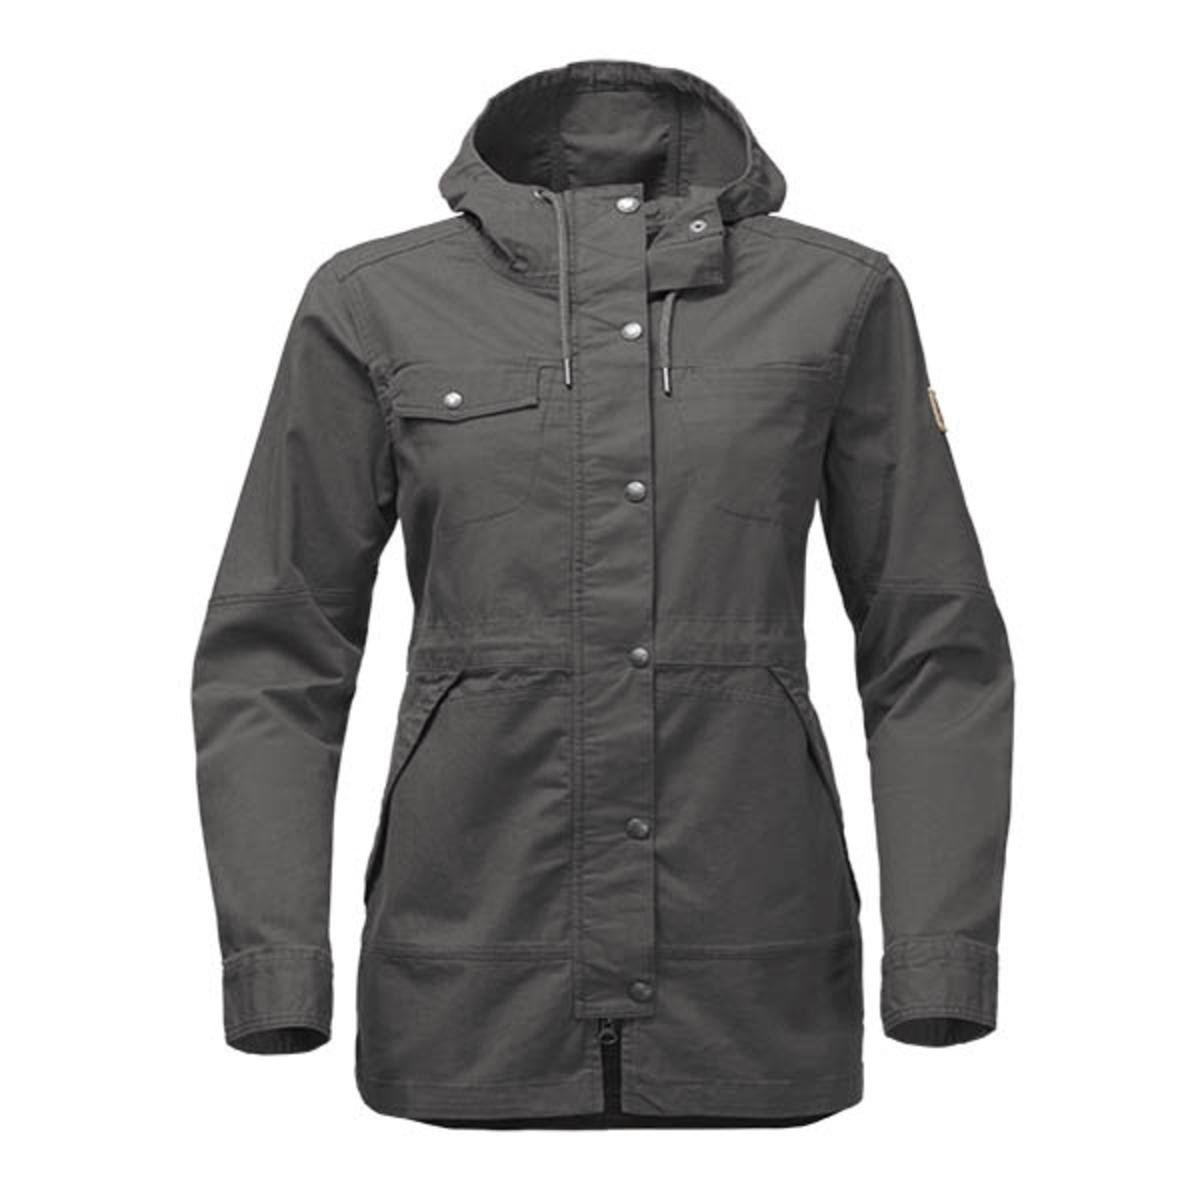 55c6deea3d96 The North Face Women s Utility Jacket - The Warming Store